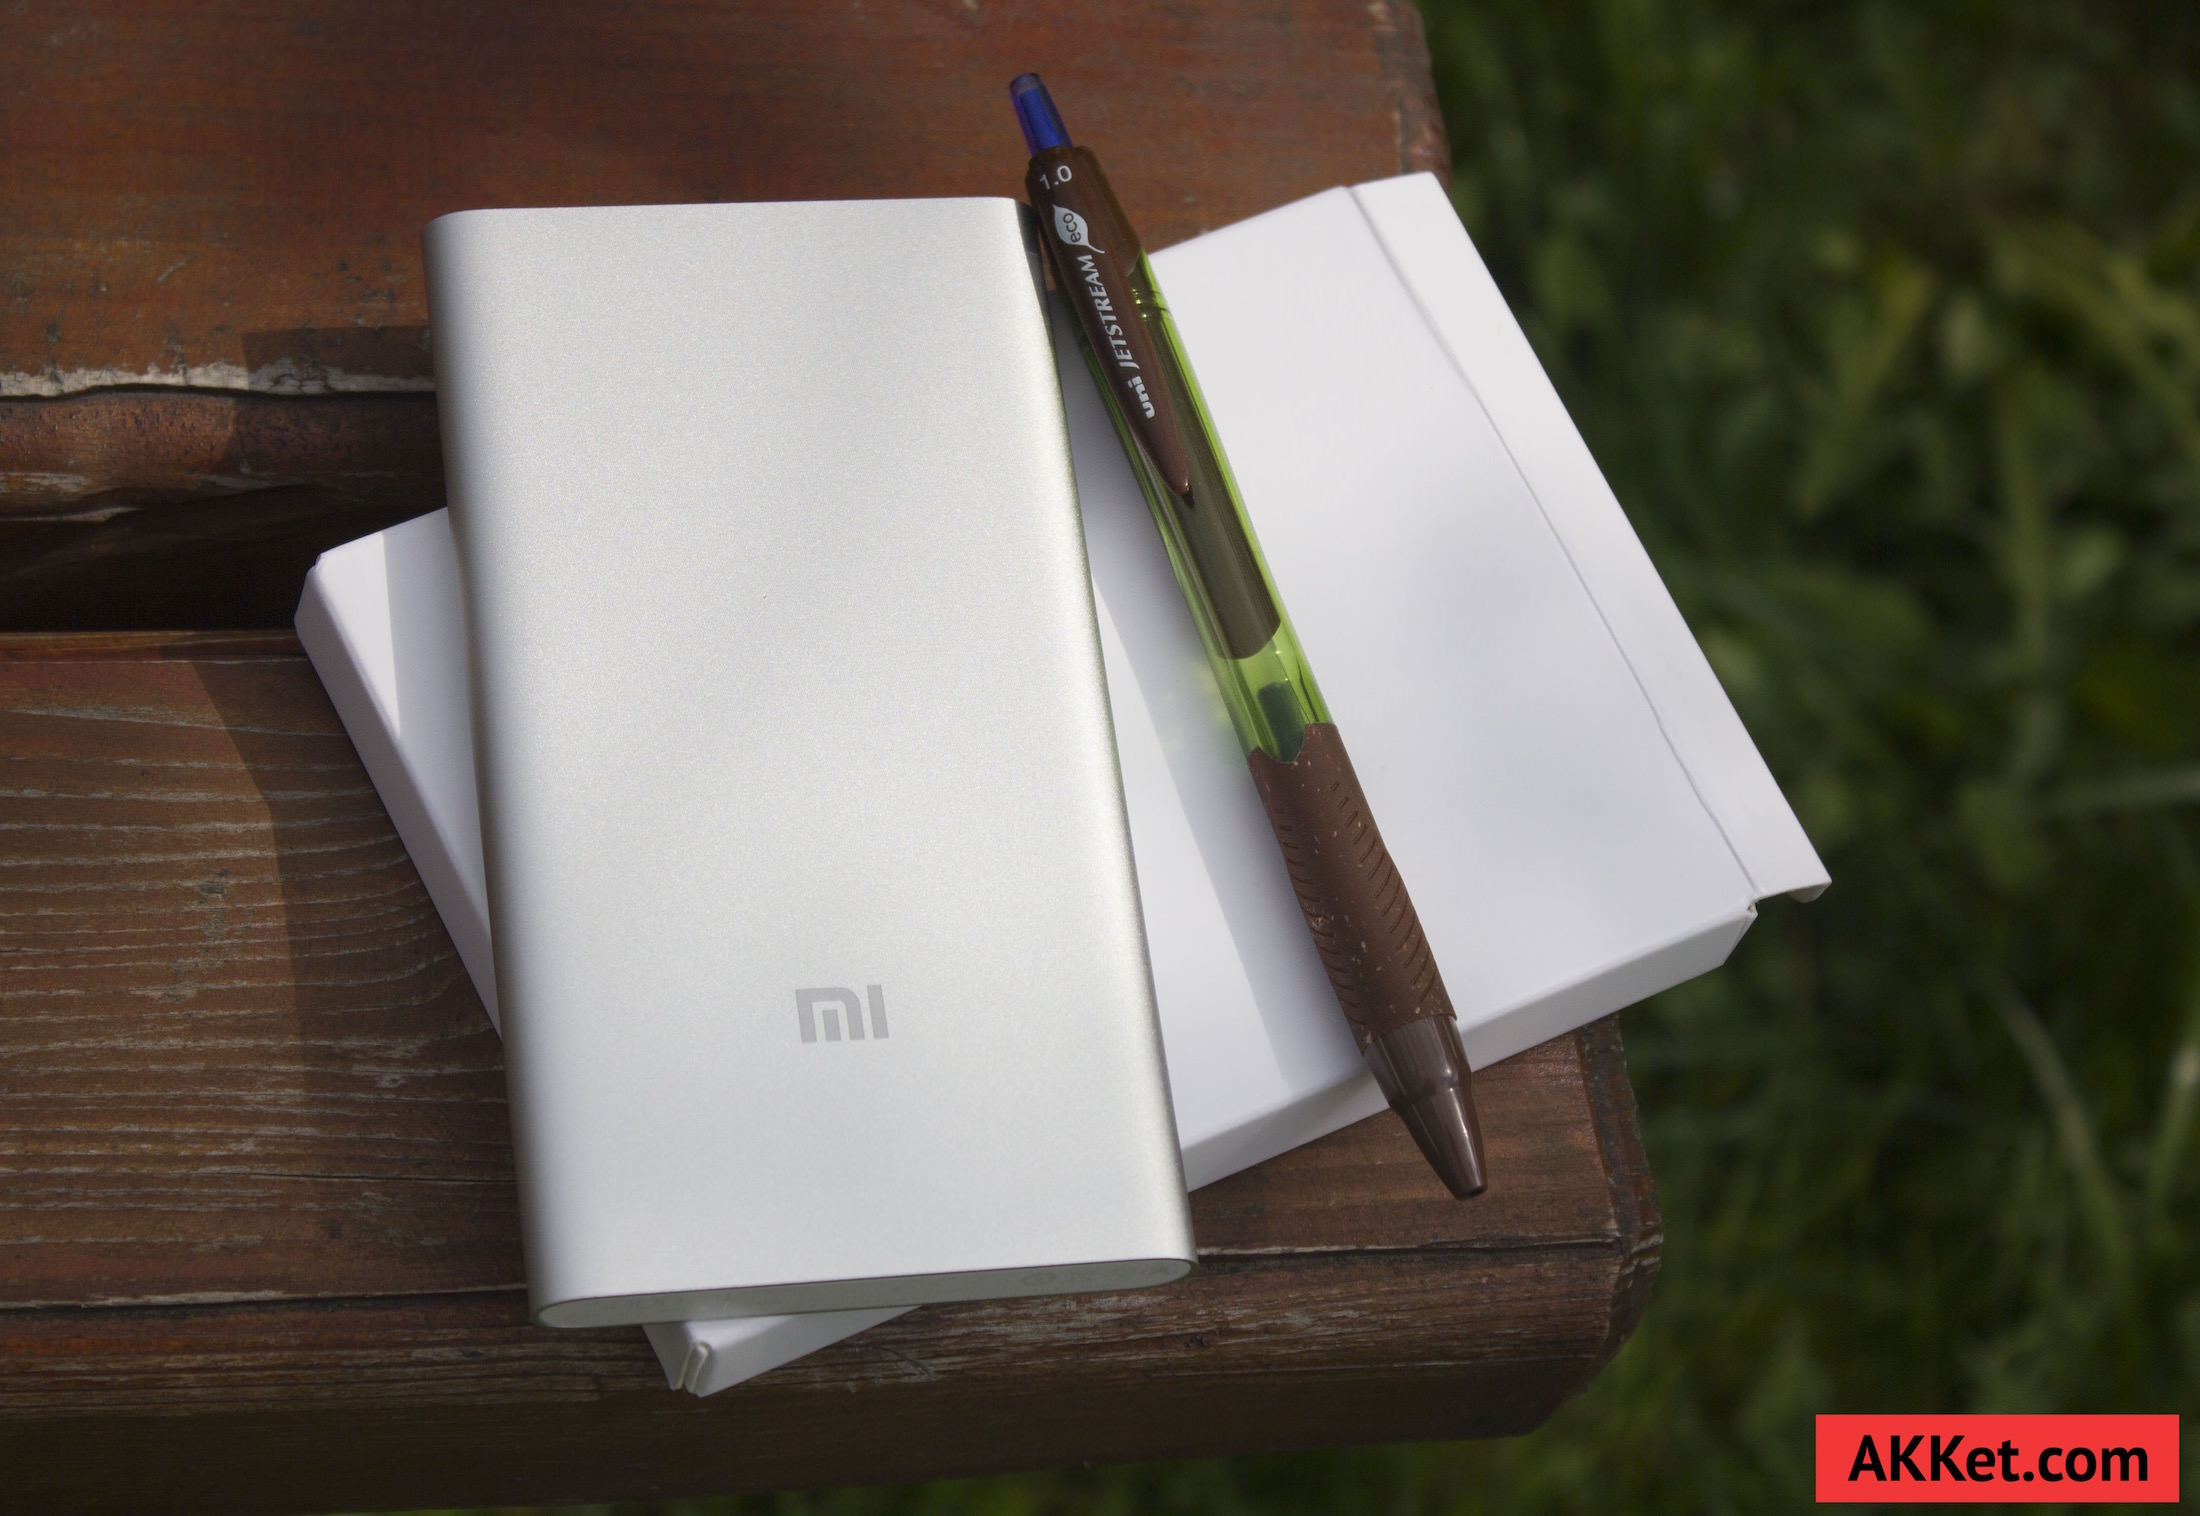 Xiaomi Mi Power Bank 5000 mAh Review iPhone 6